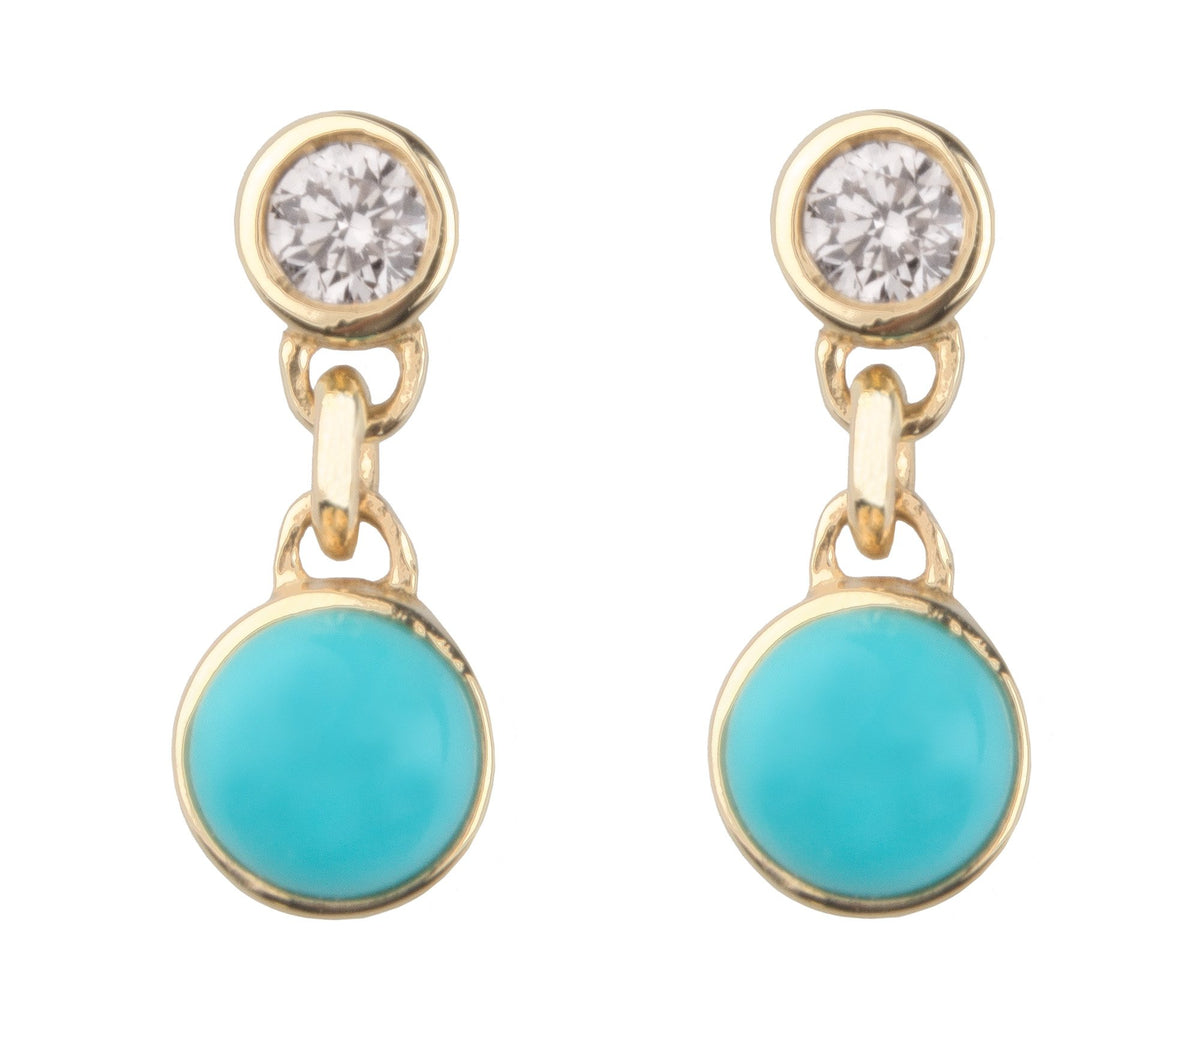 GRANDMOTHER'S DIAMOND & TURQUOISE BONBON STUD EARRINGS